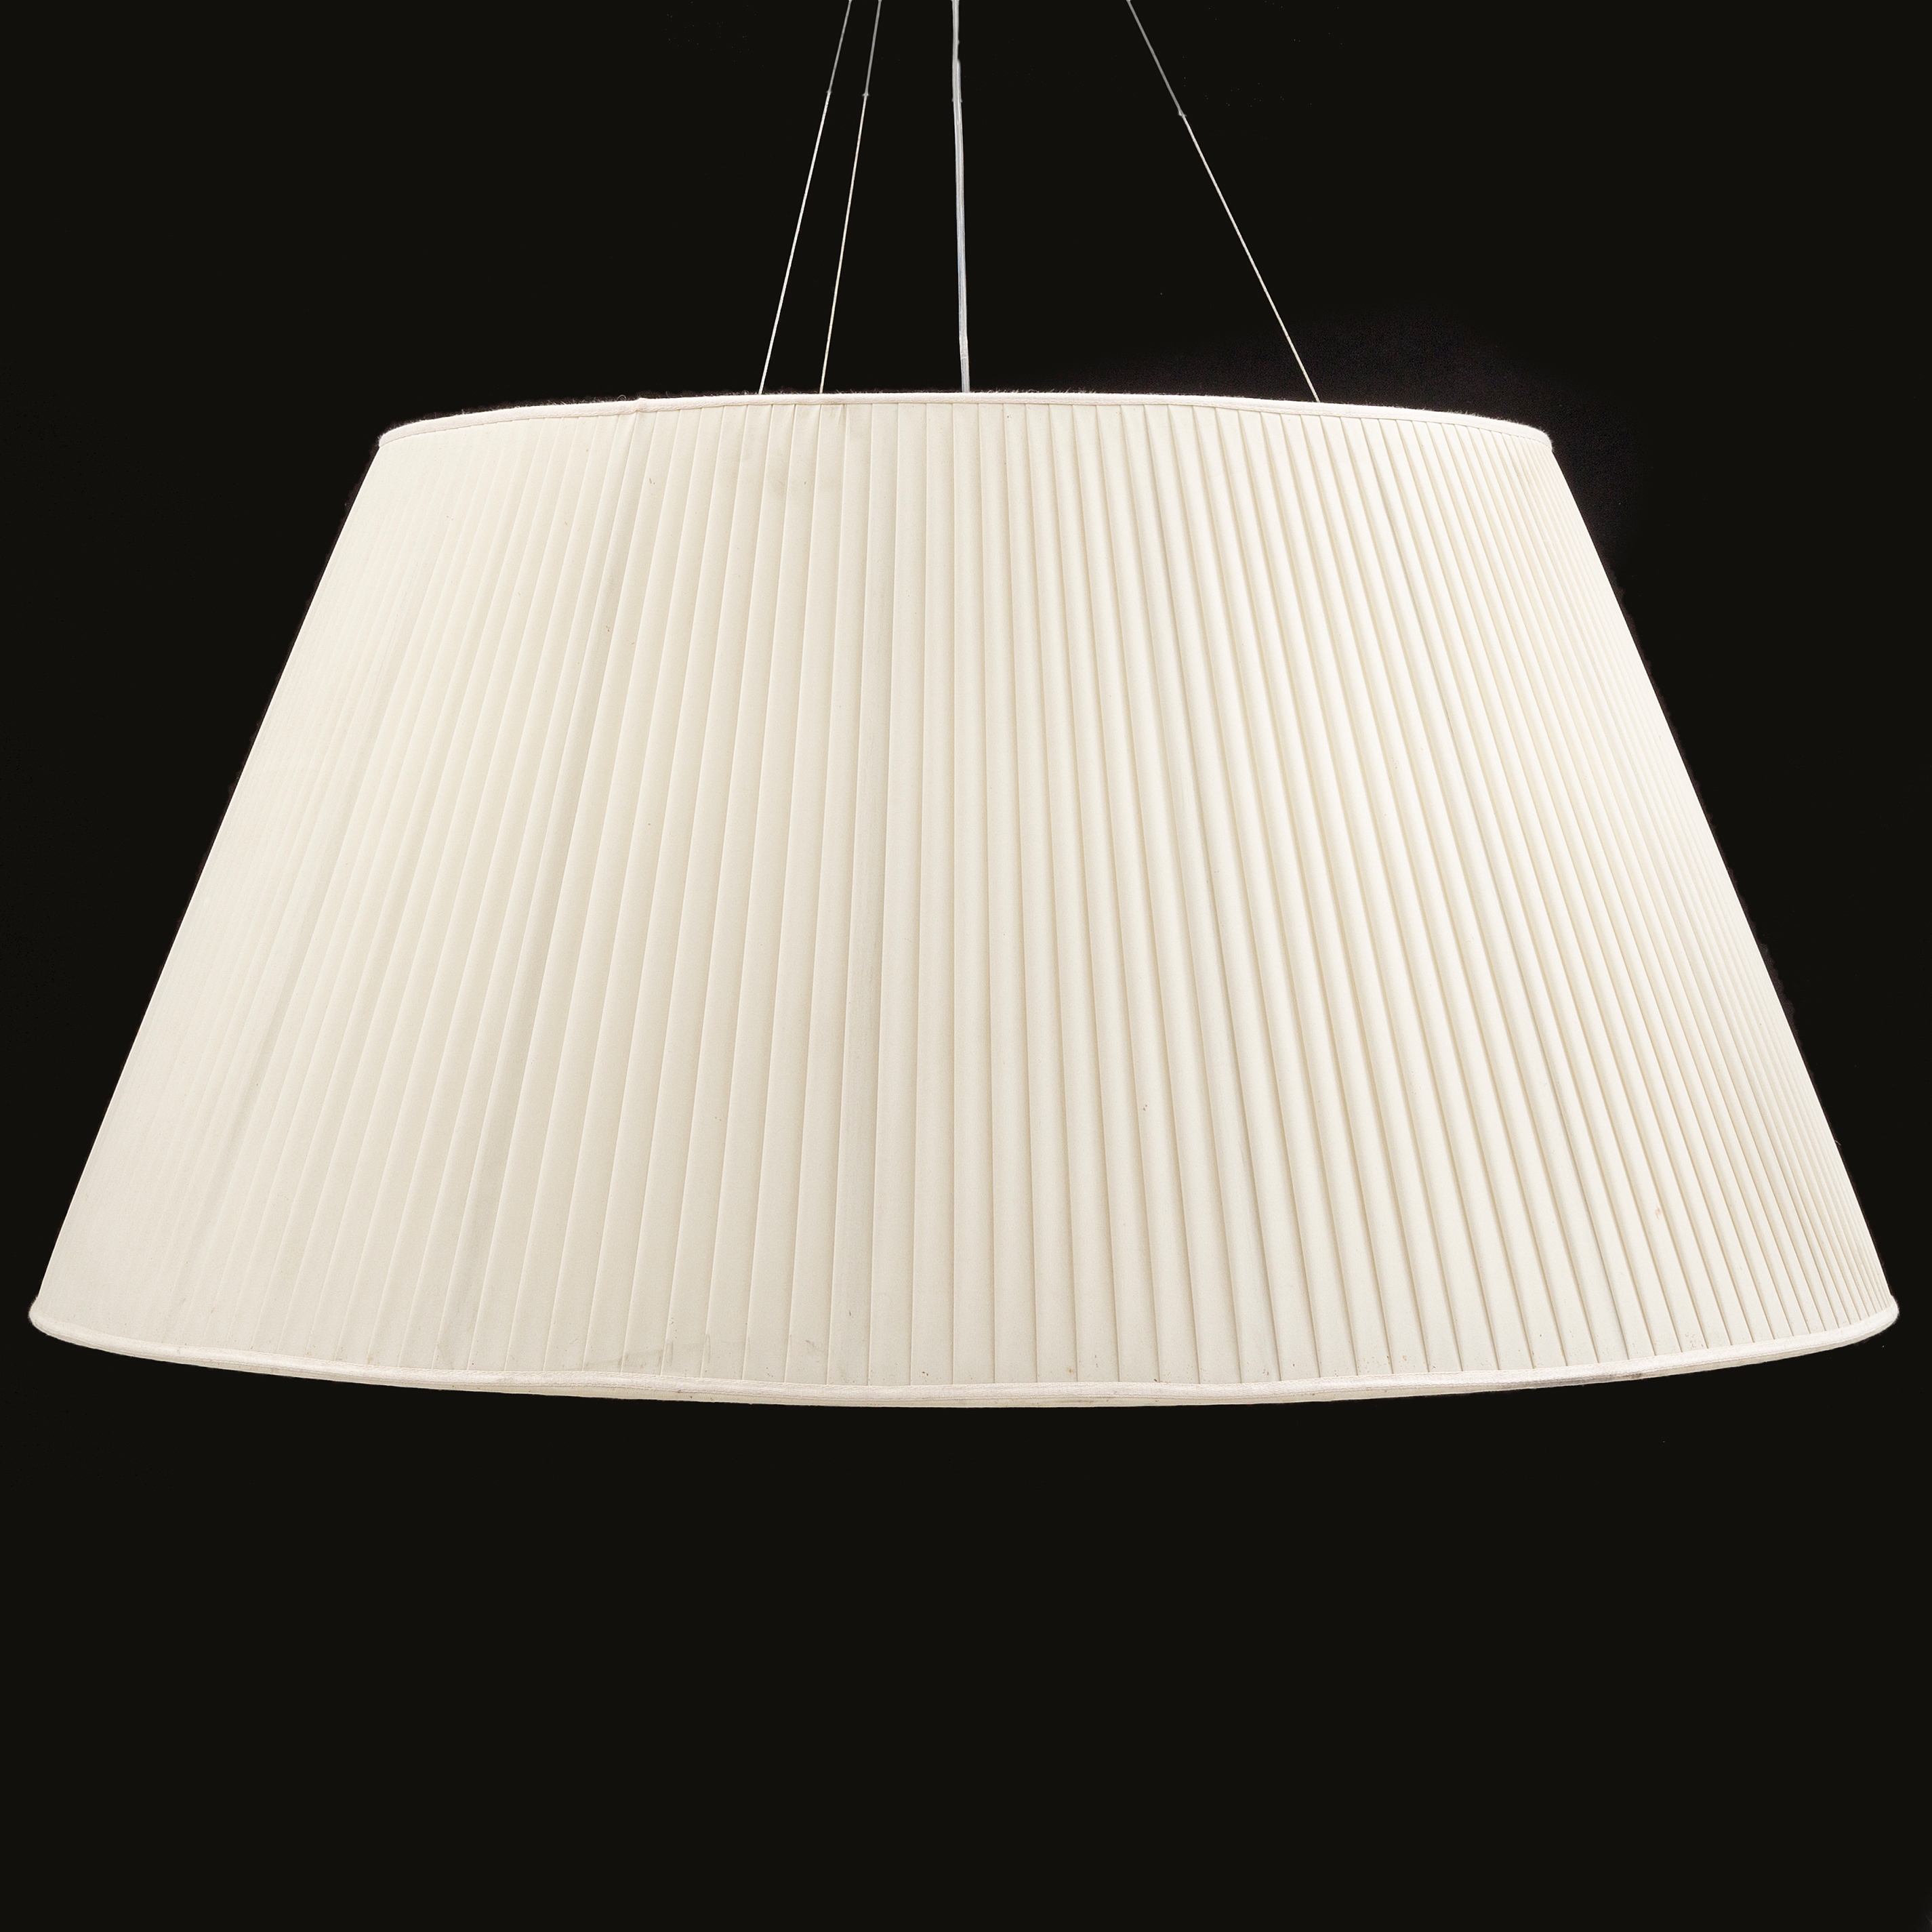 Philippe starck philippe starck a romeo soft ceiling light for 10933016 bukobject arubaitofo Images